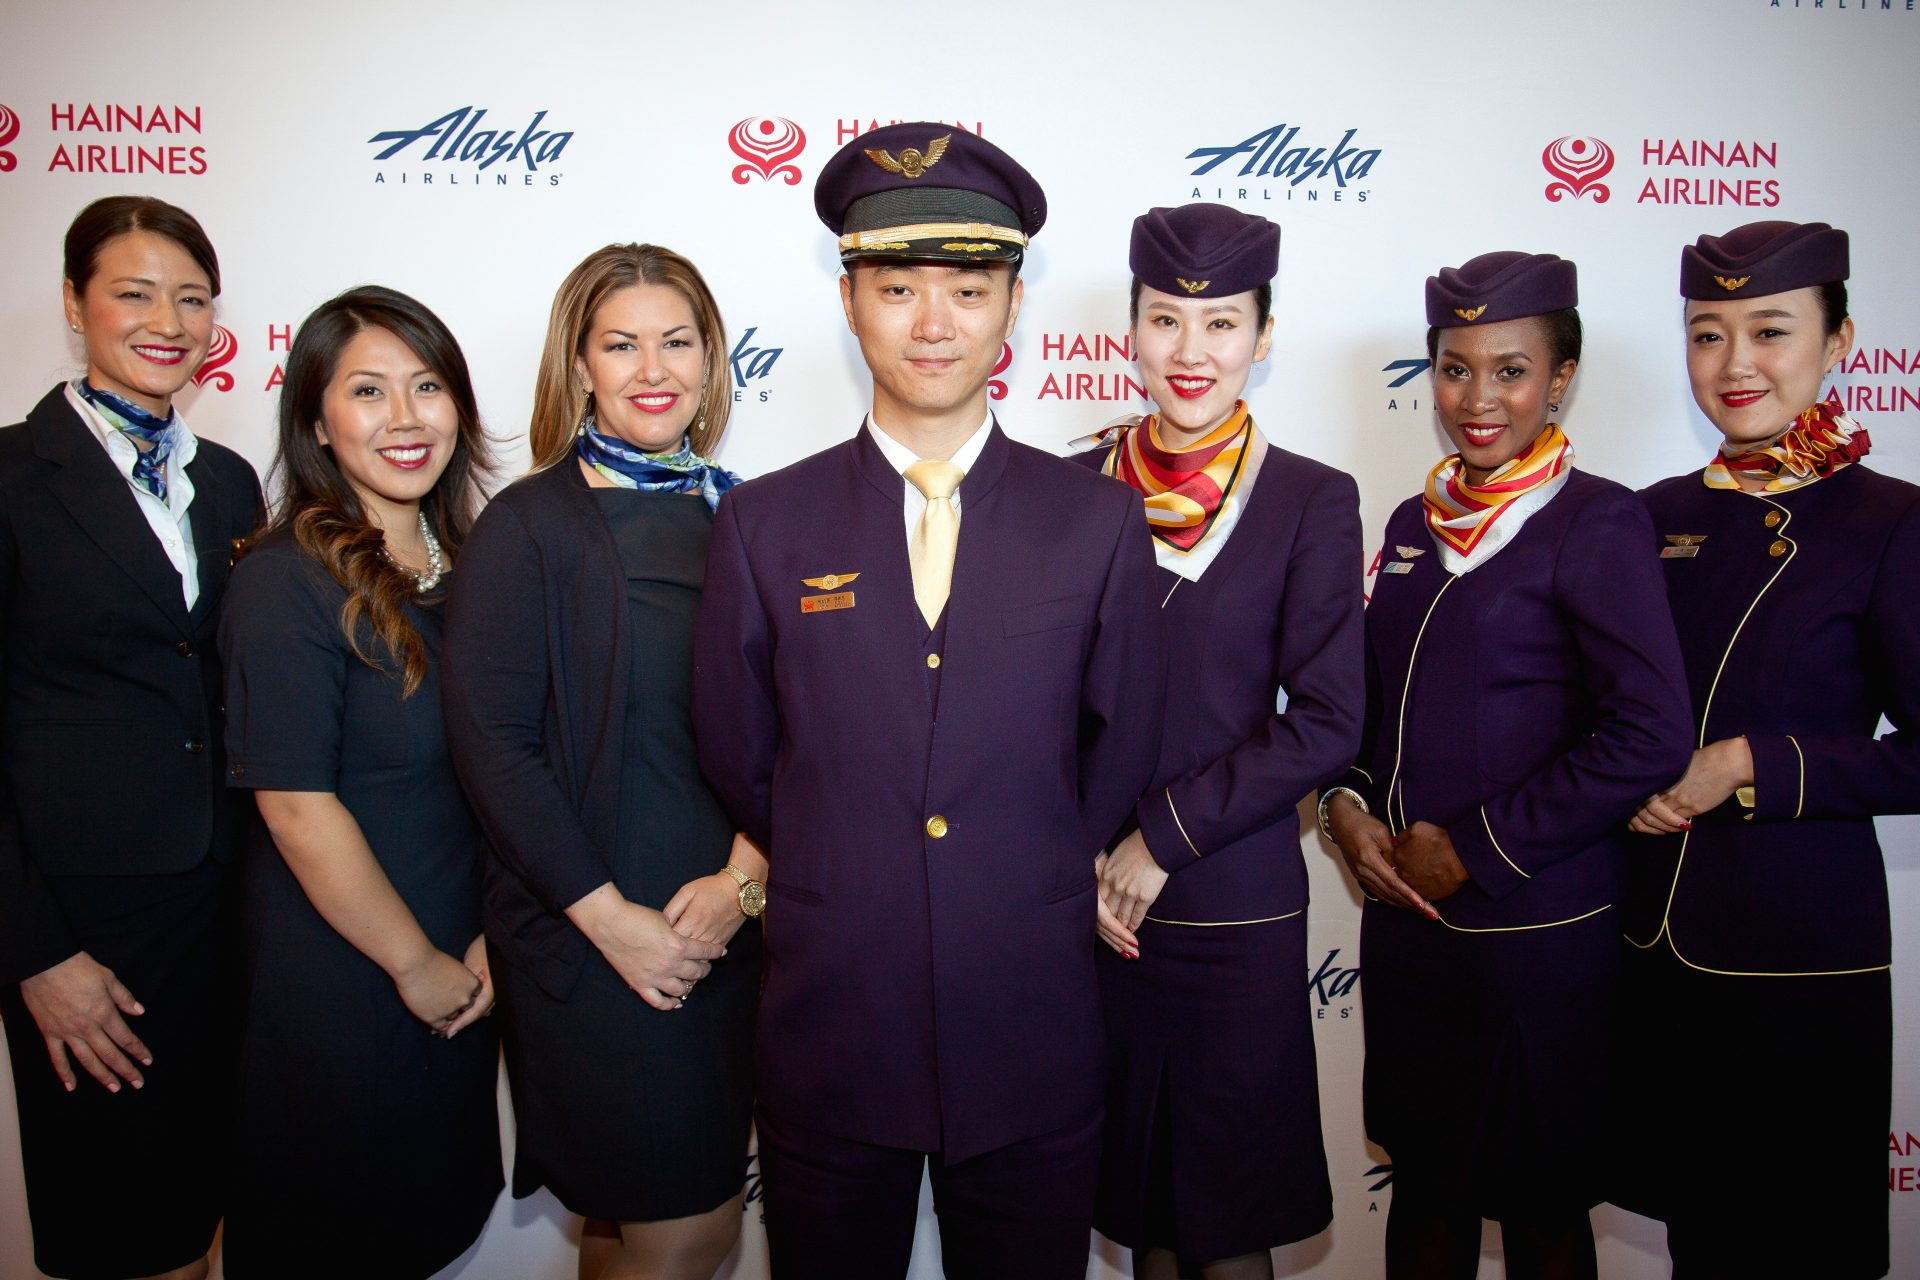 Group shot from the Alaska Airlines and Hainan Airlines Partnership Event